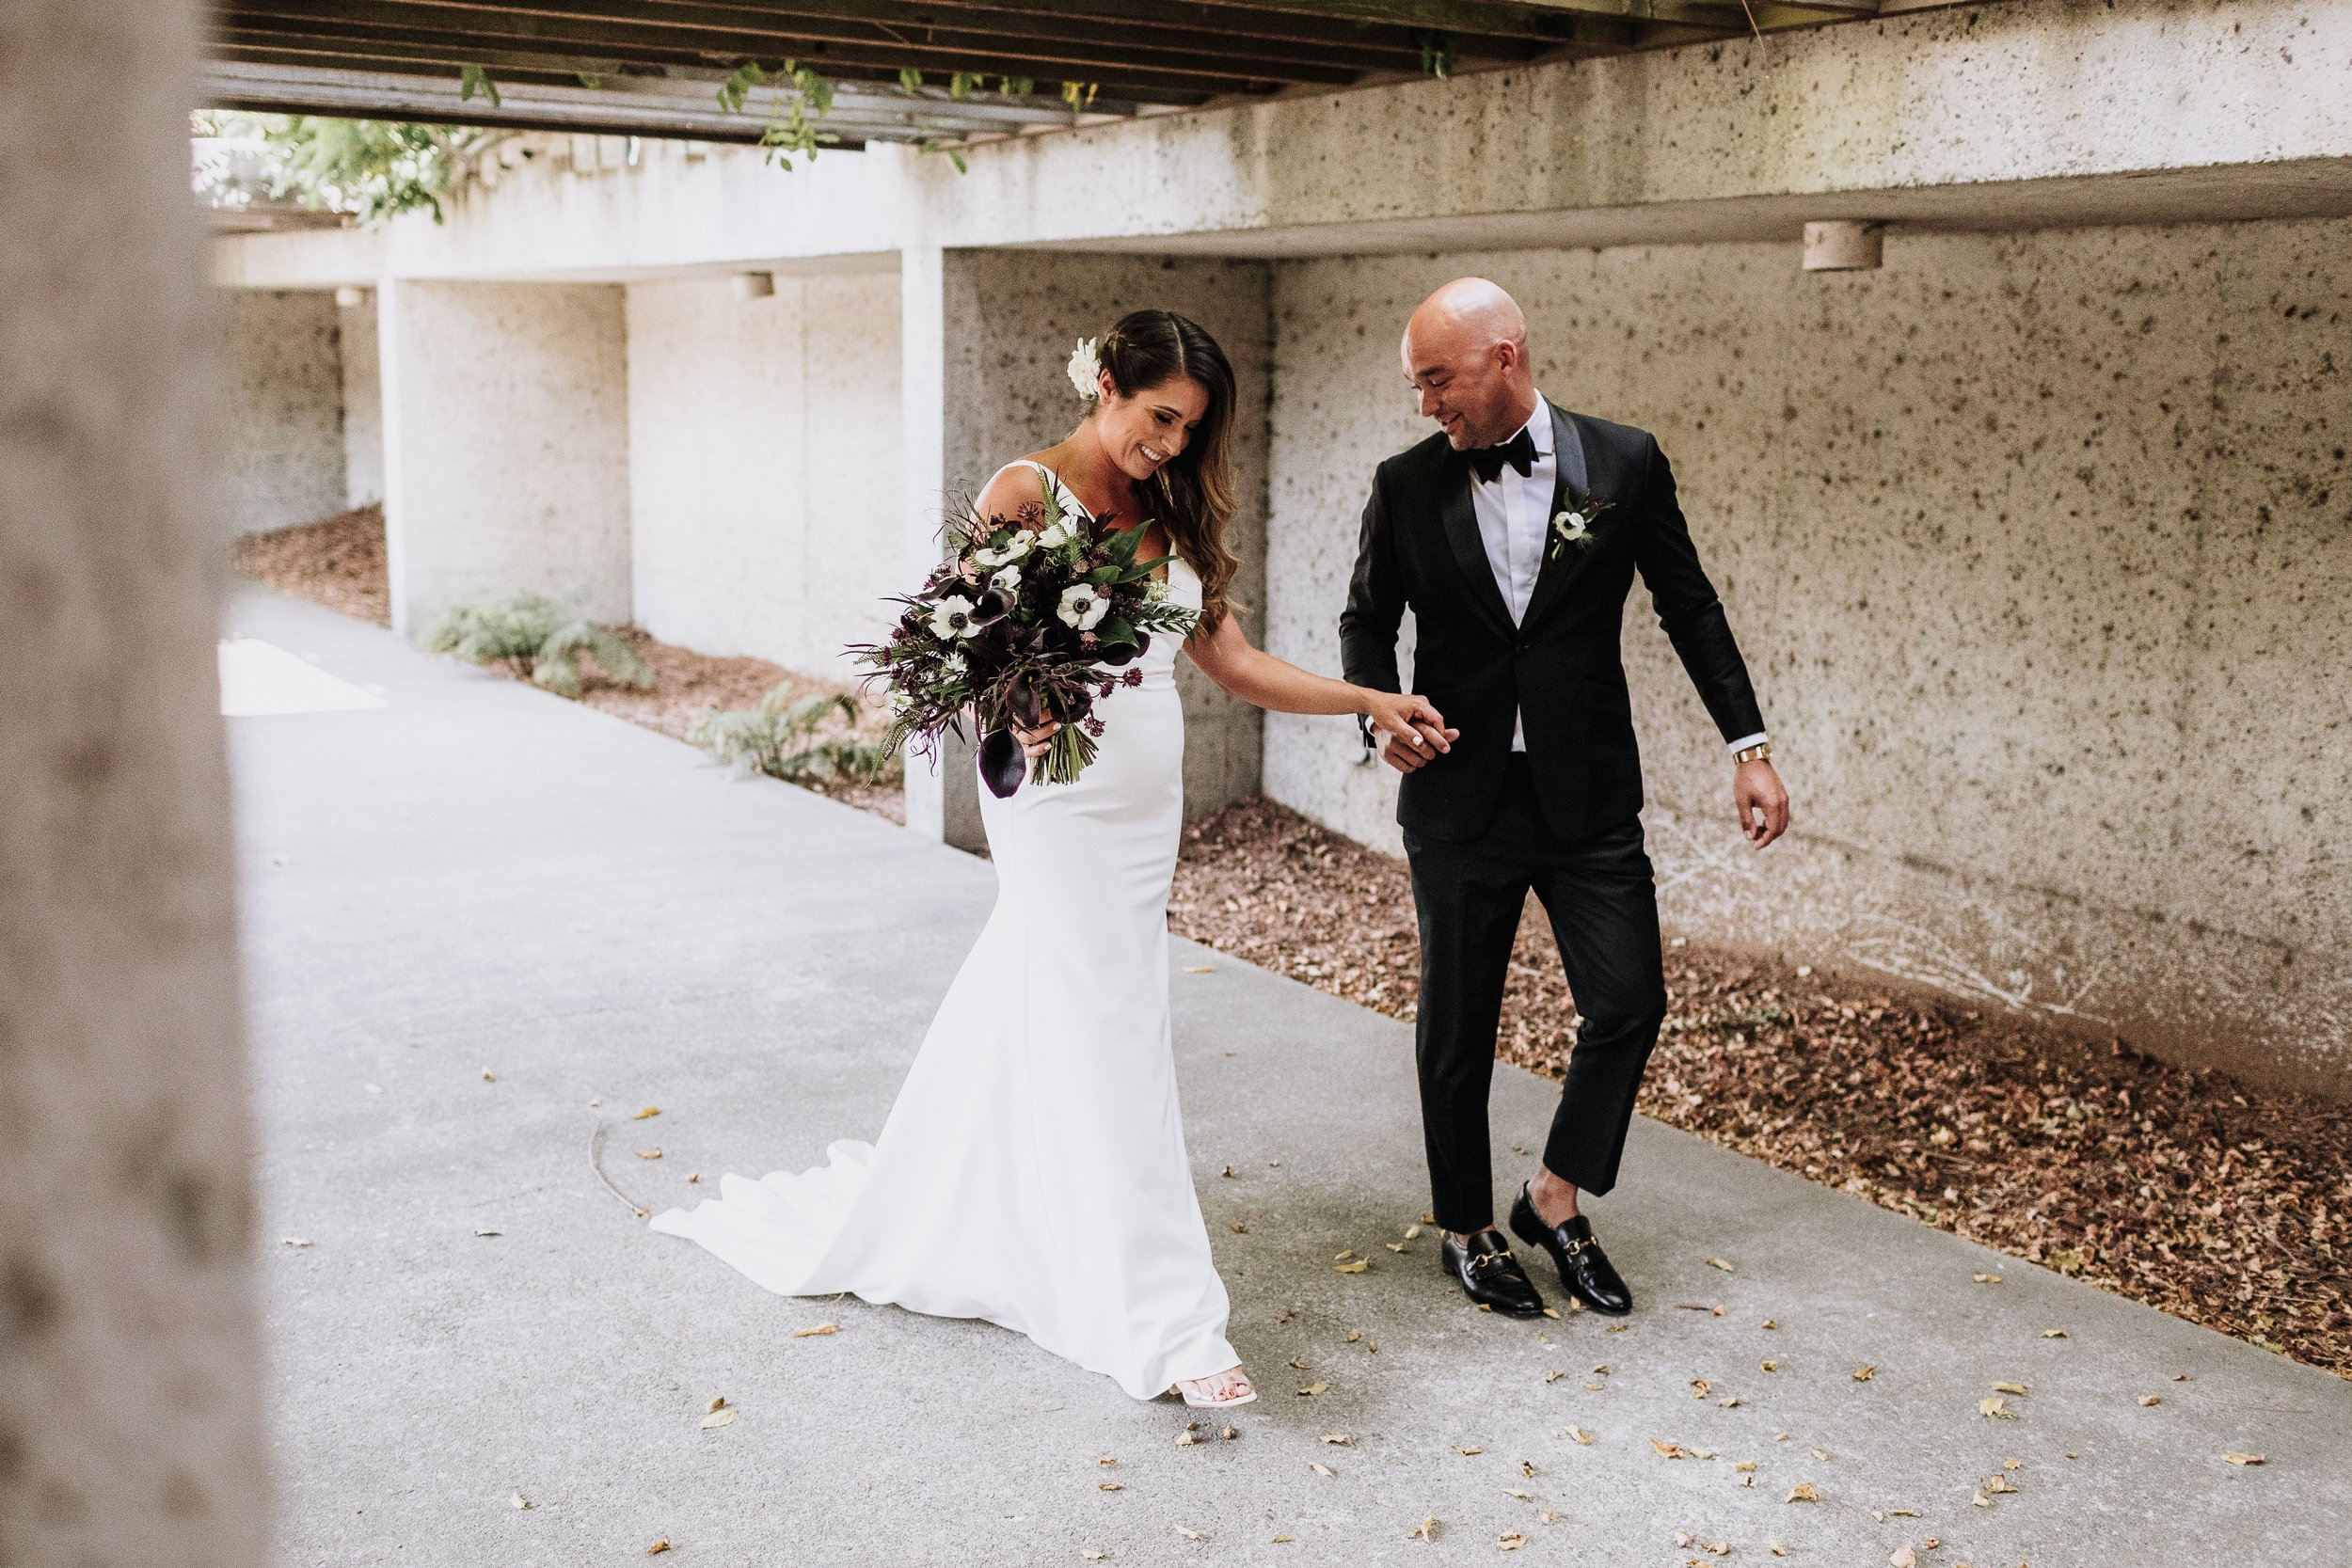 Walking Together Bride and Groom Concrete Jungle Oakland Museum of California KLdc